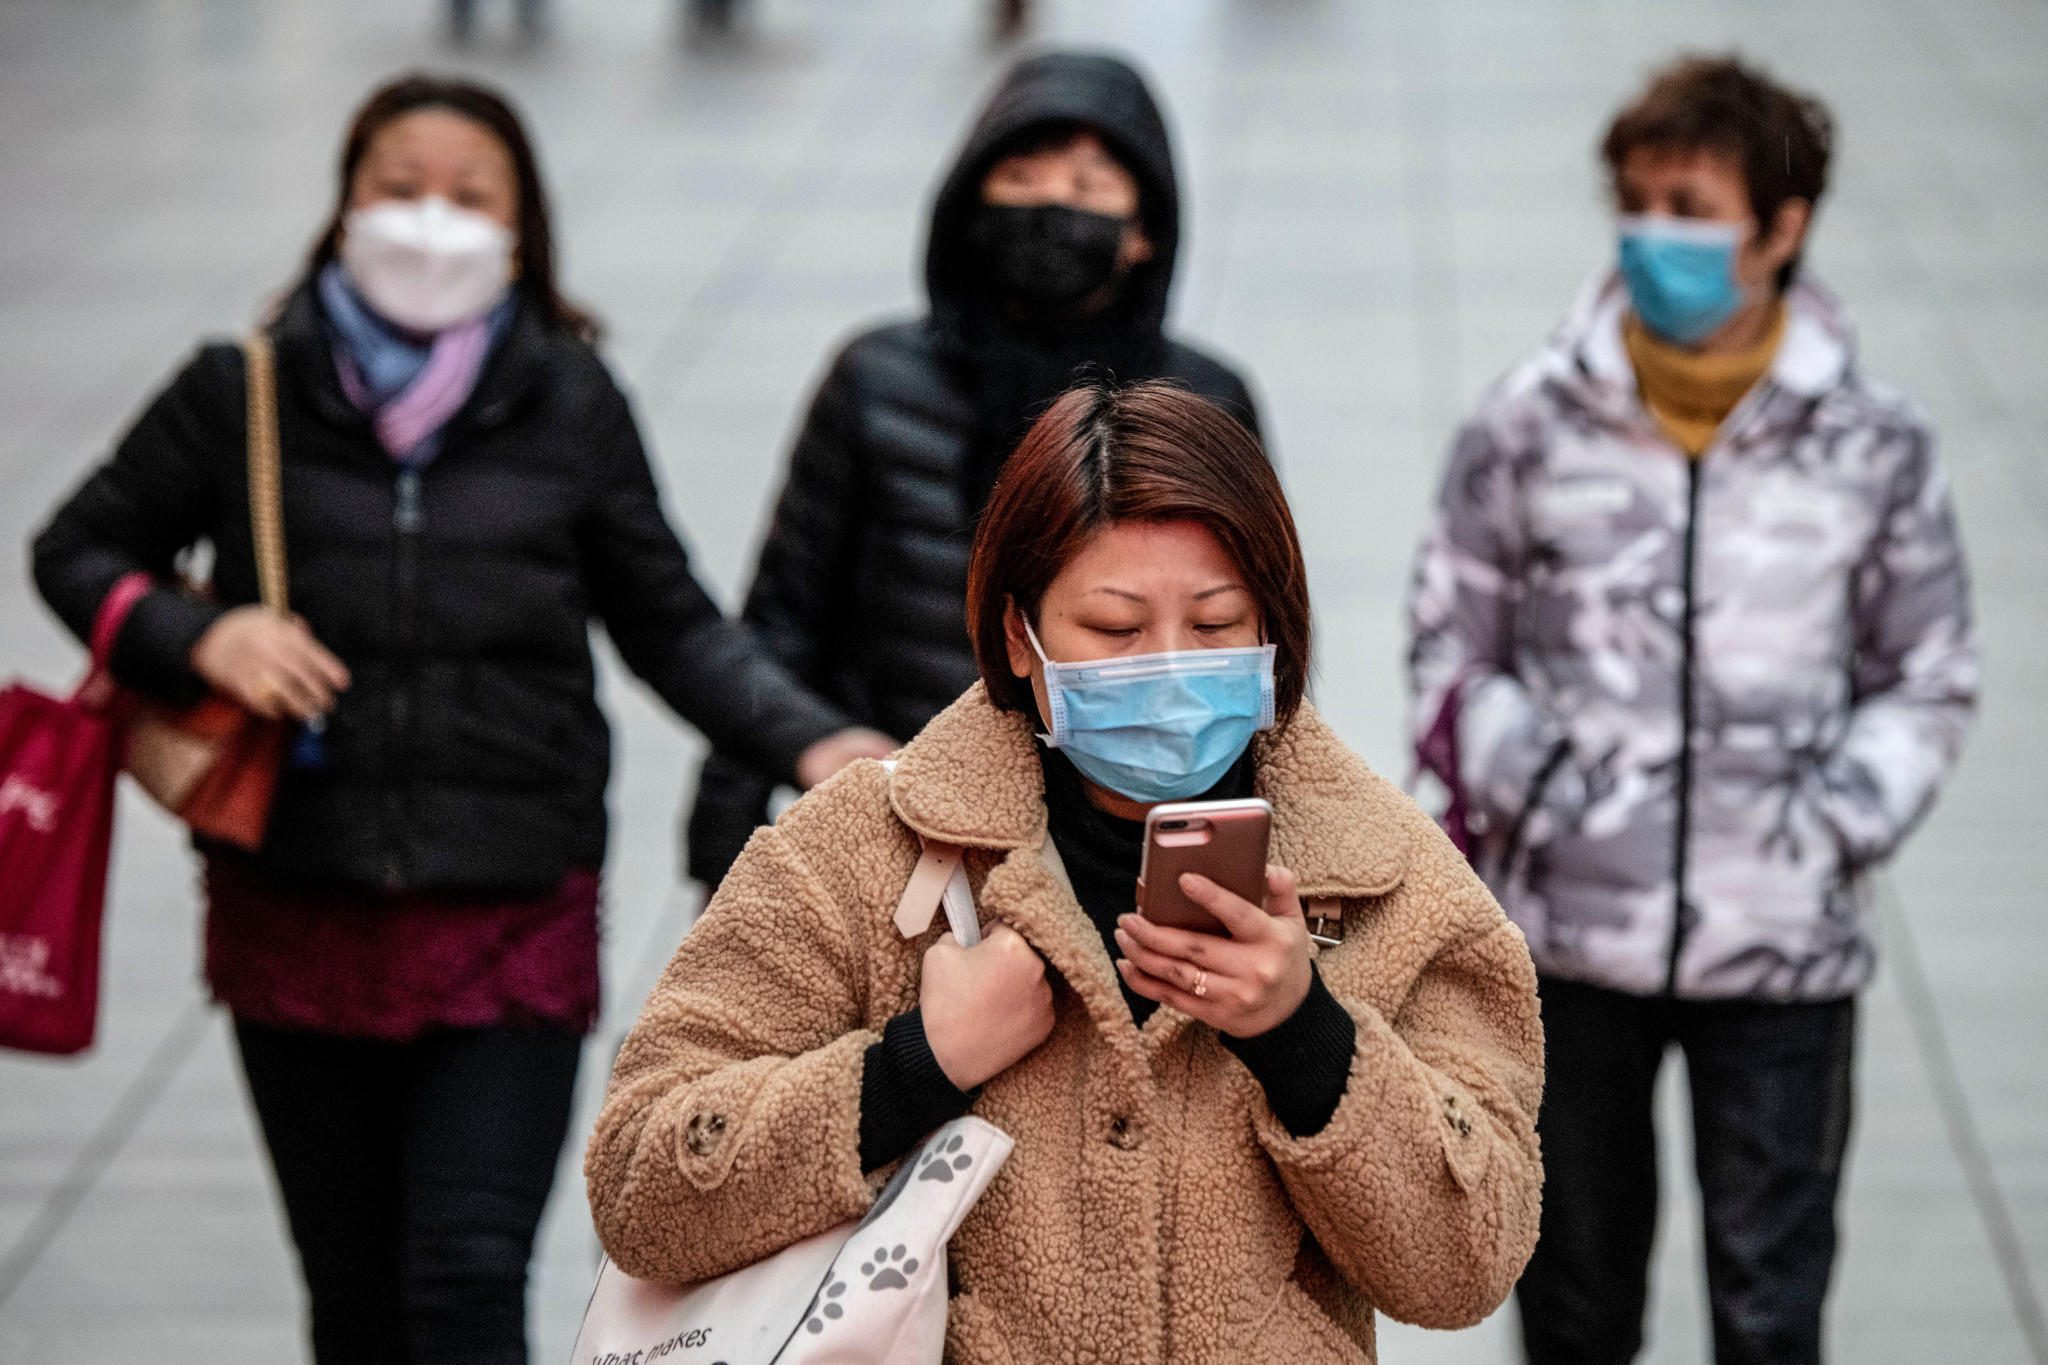 Over 76,000 people in China have now been infected with coronavirus ©Getty Images